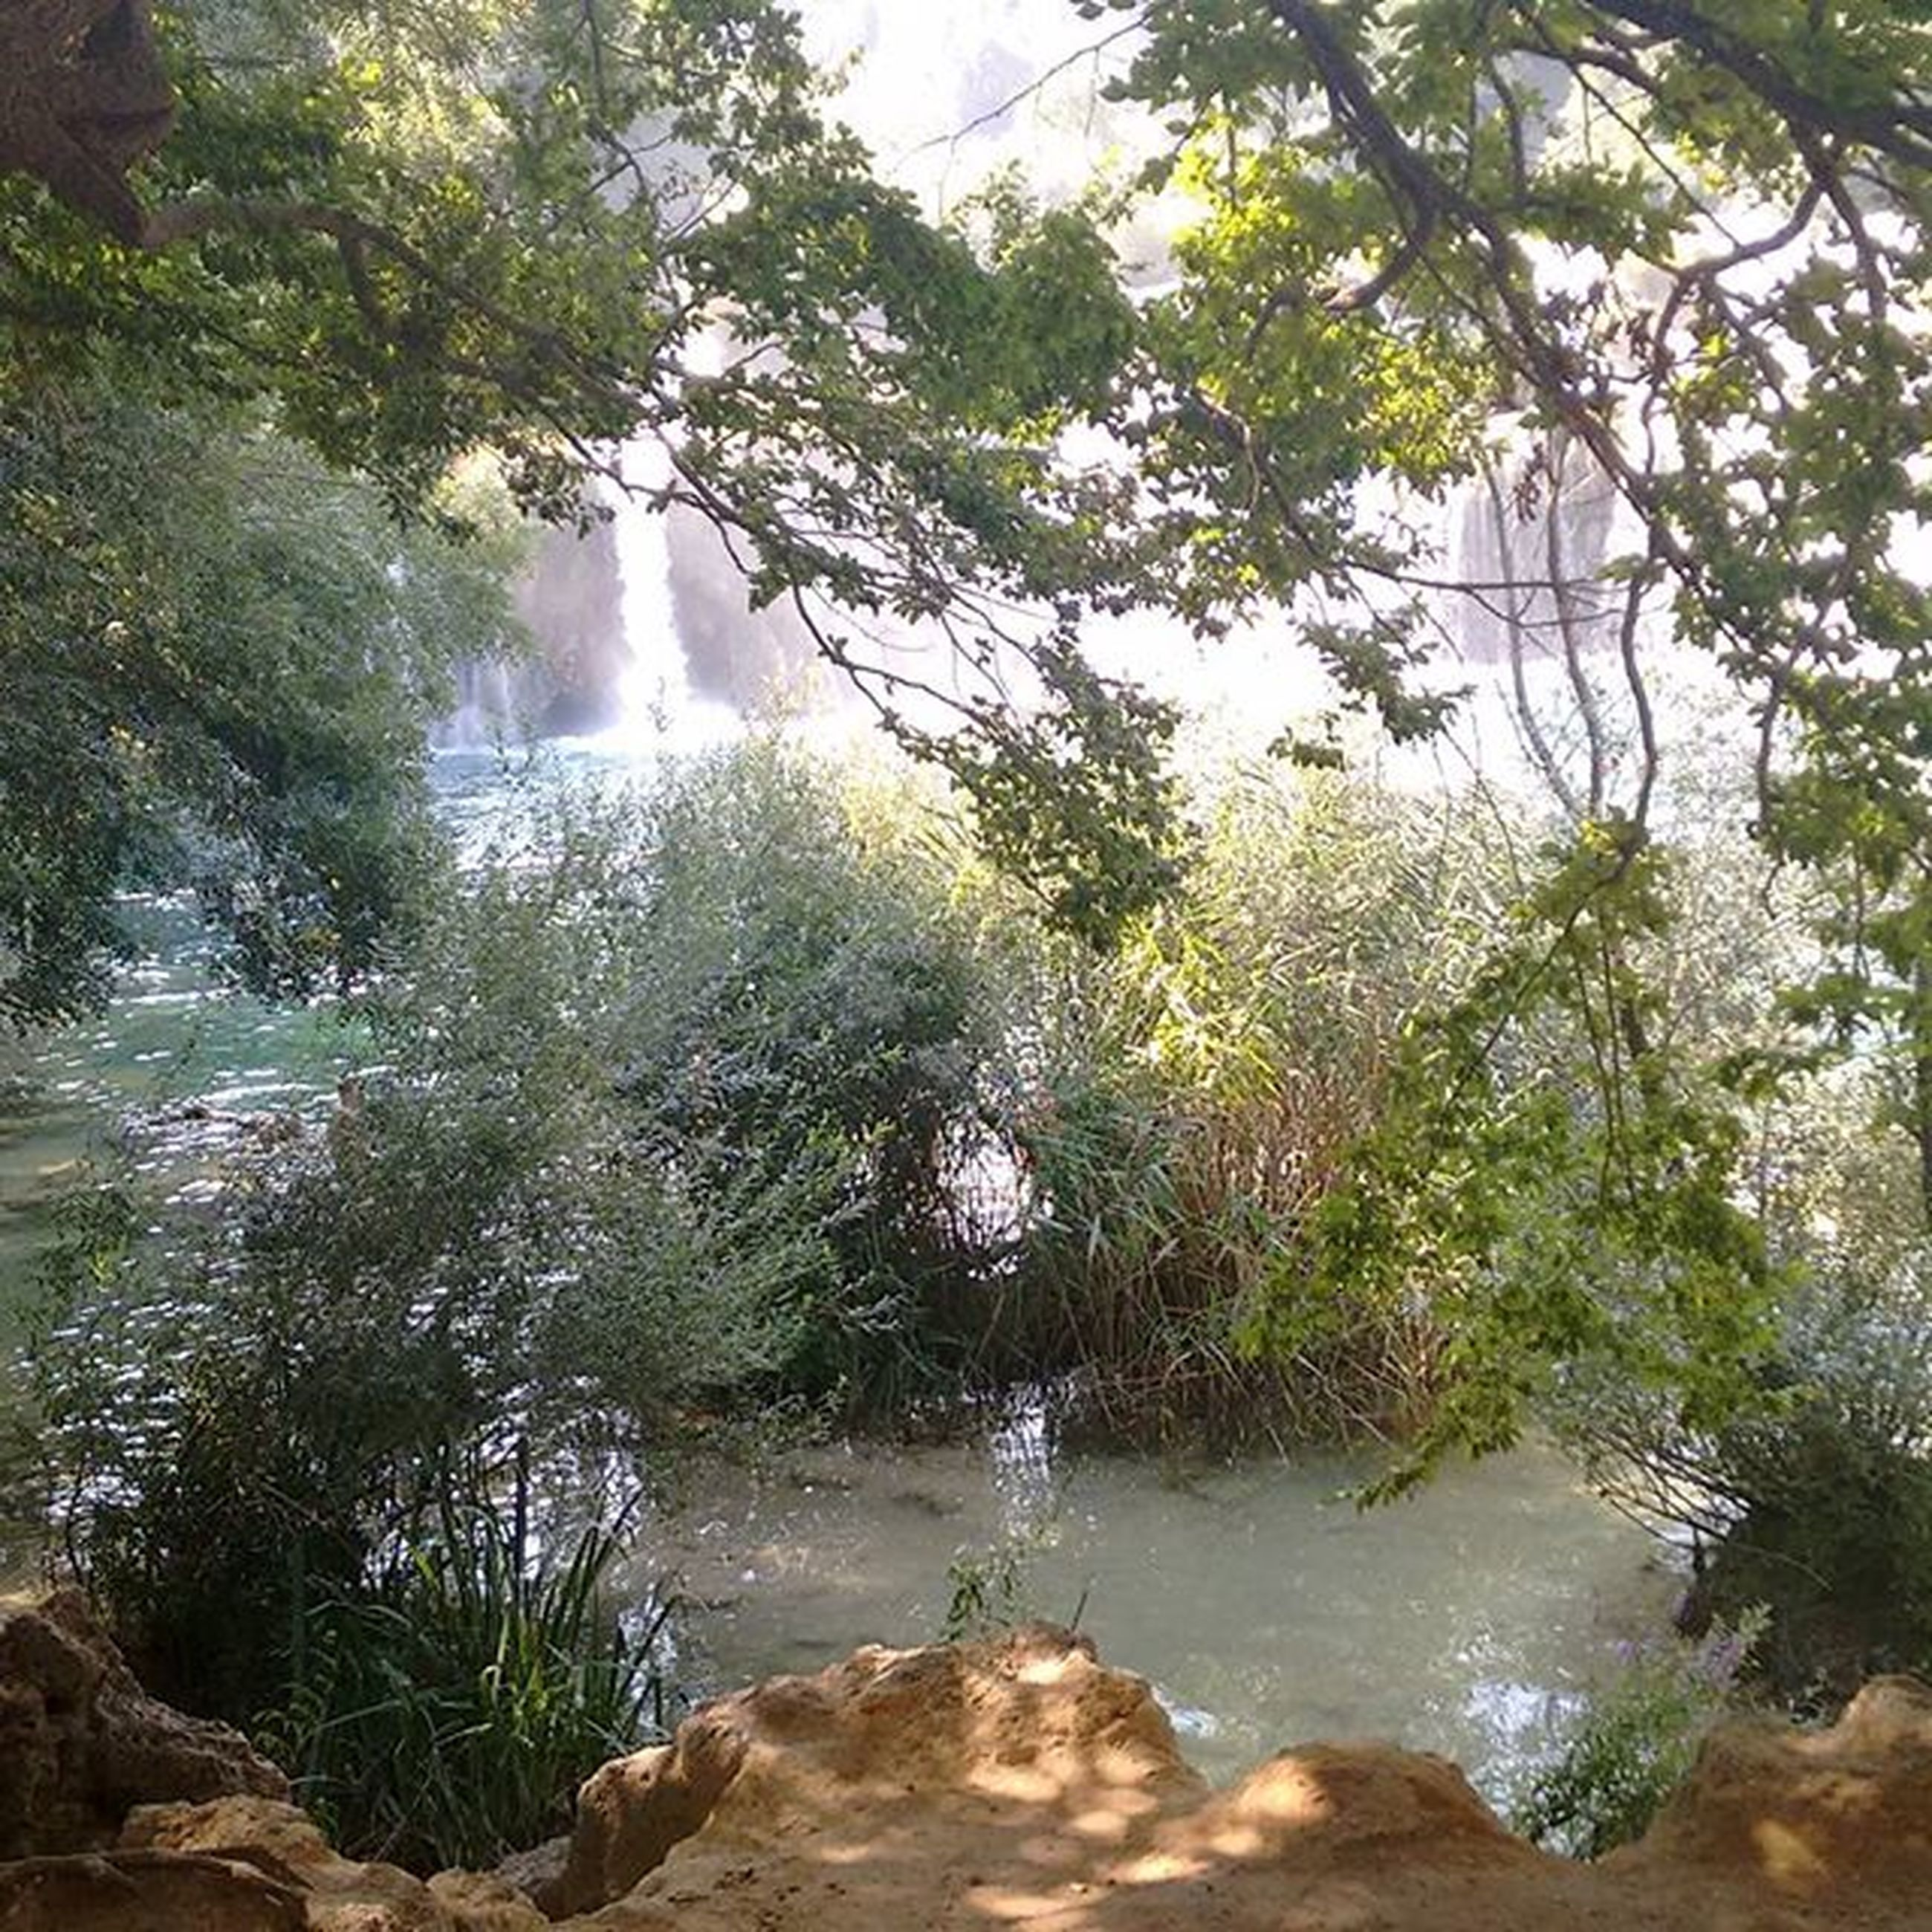 water, tree, beauty in nature, nature, scenics, tranquility, rock - object, flowing water, tranquil scene, flowing, stream, waterfall, forest, motion, river, idyllic, day, growth, outdoors, non-urban scene